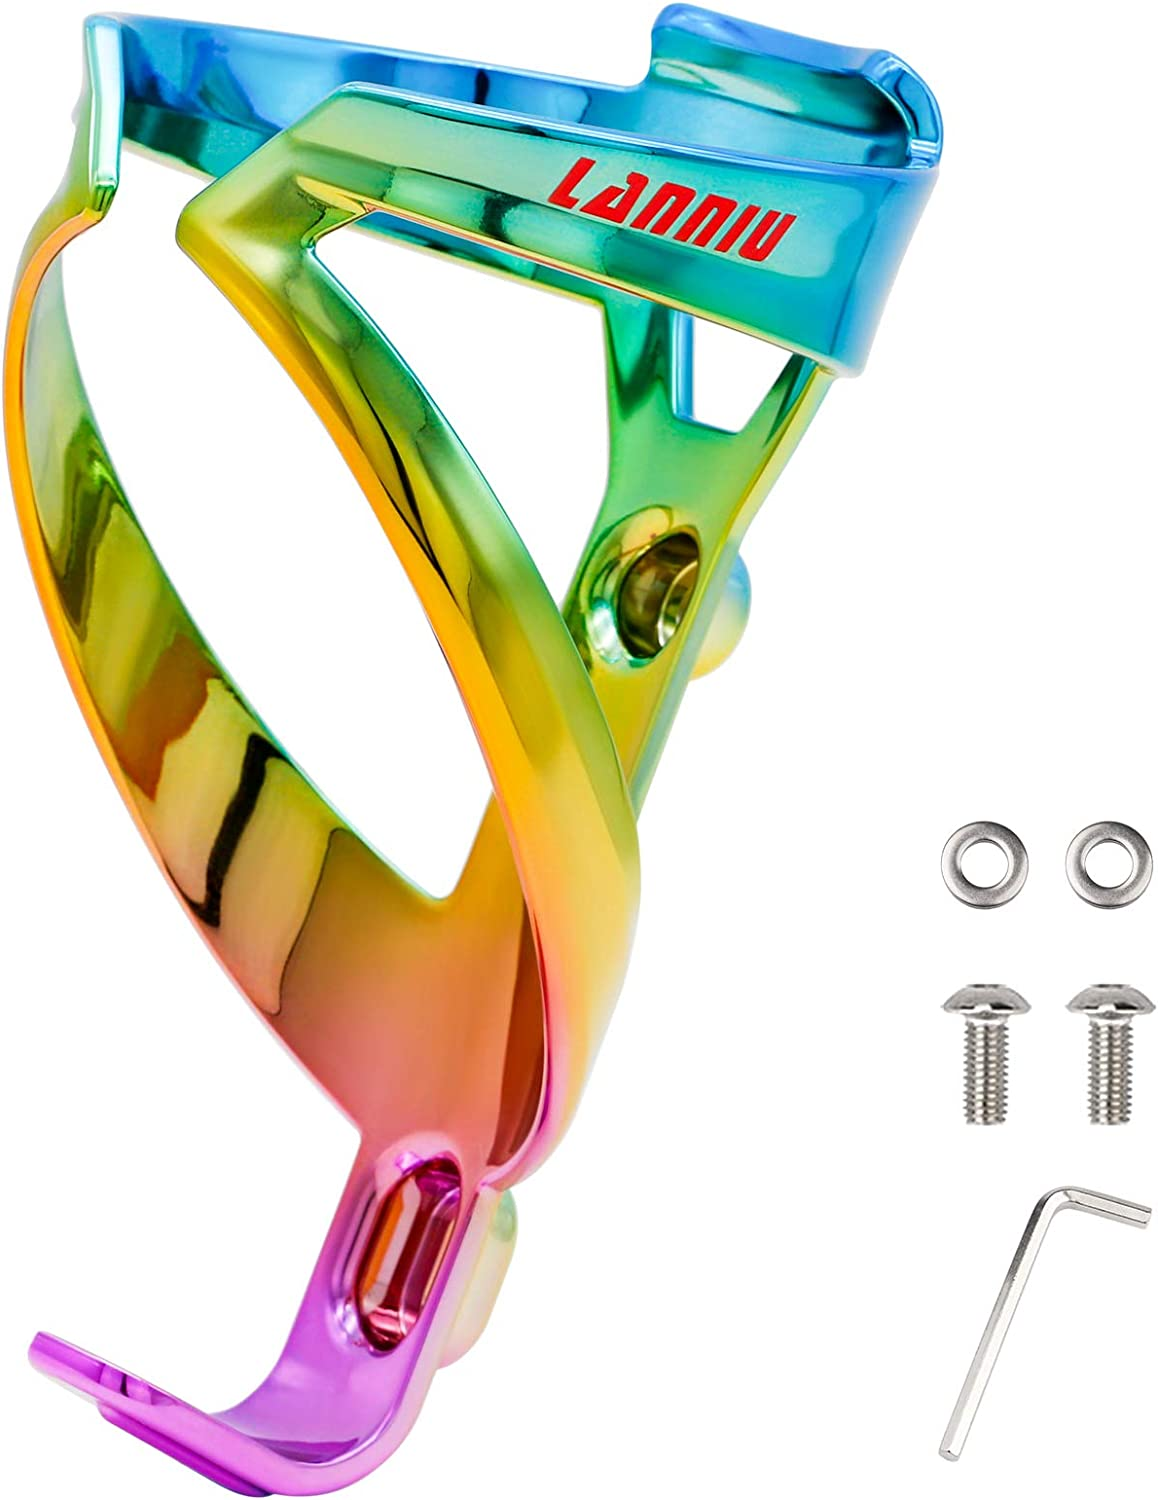 San Antonio Mall LANNIU Bike Complete Free Shipping Water Bottle for Holder Lightweight Colorful